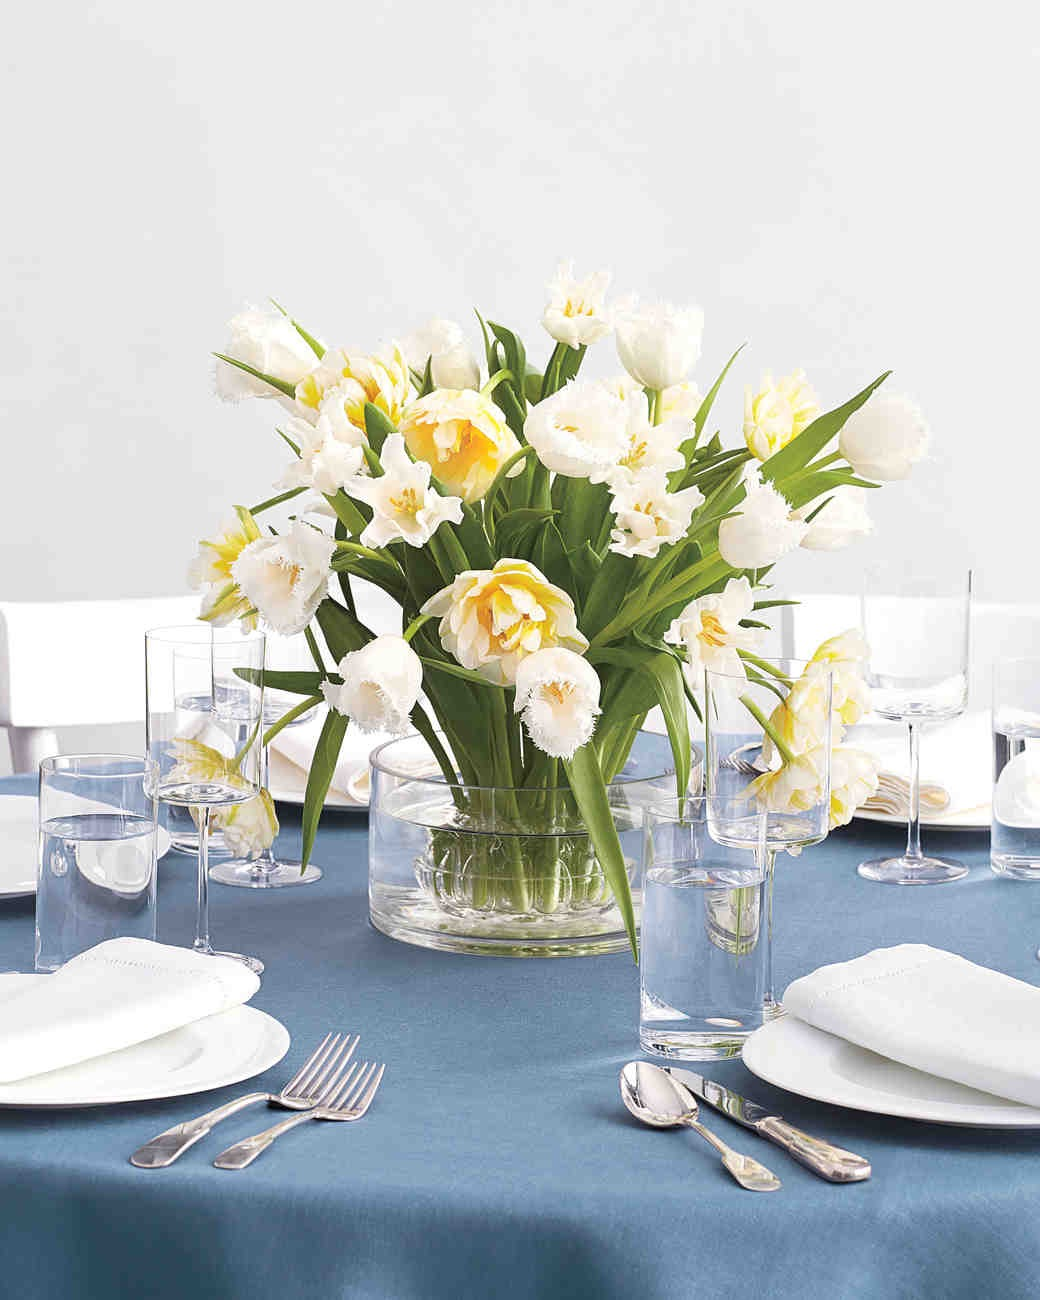 Summer Flowers Wedding Centerpieces For Round Table (Image 15 of 20)